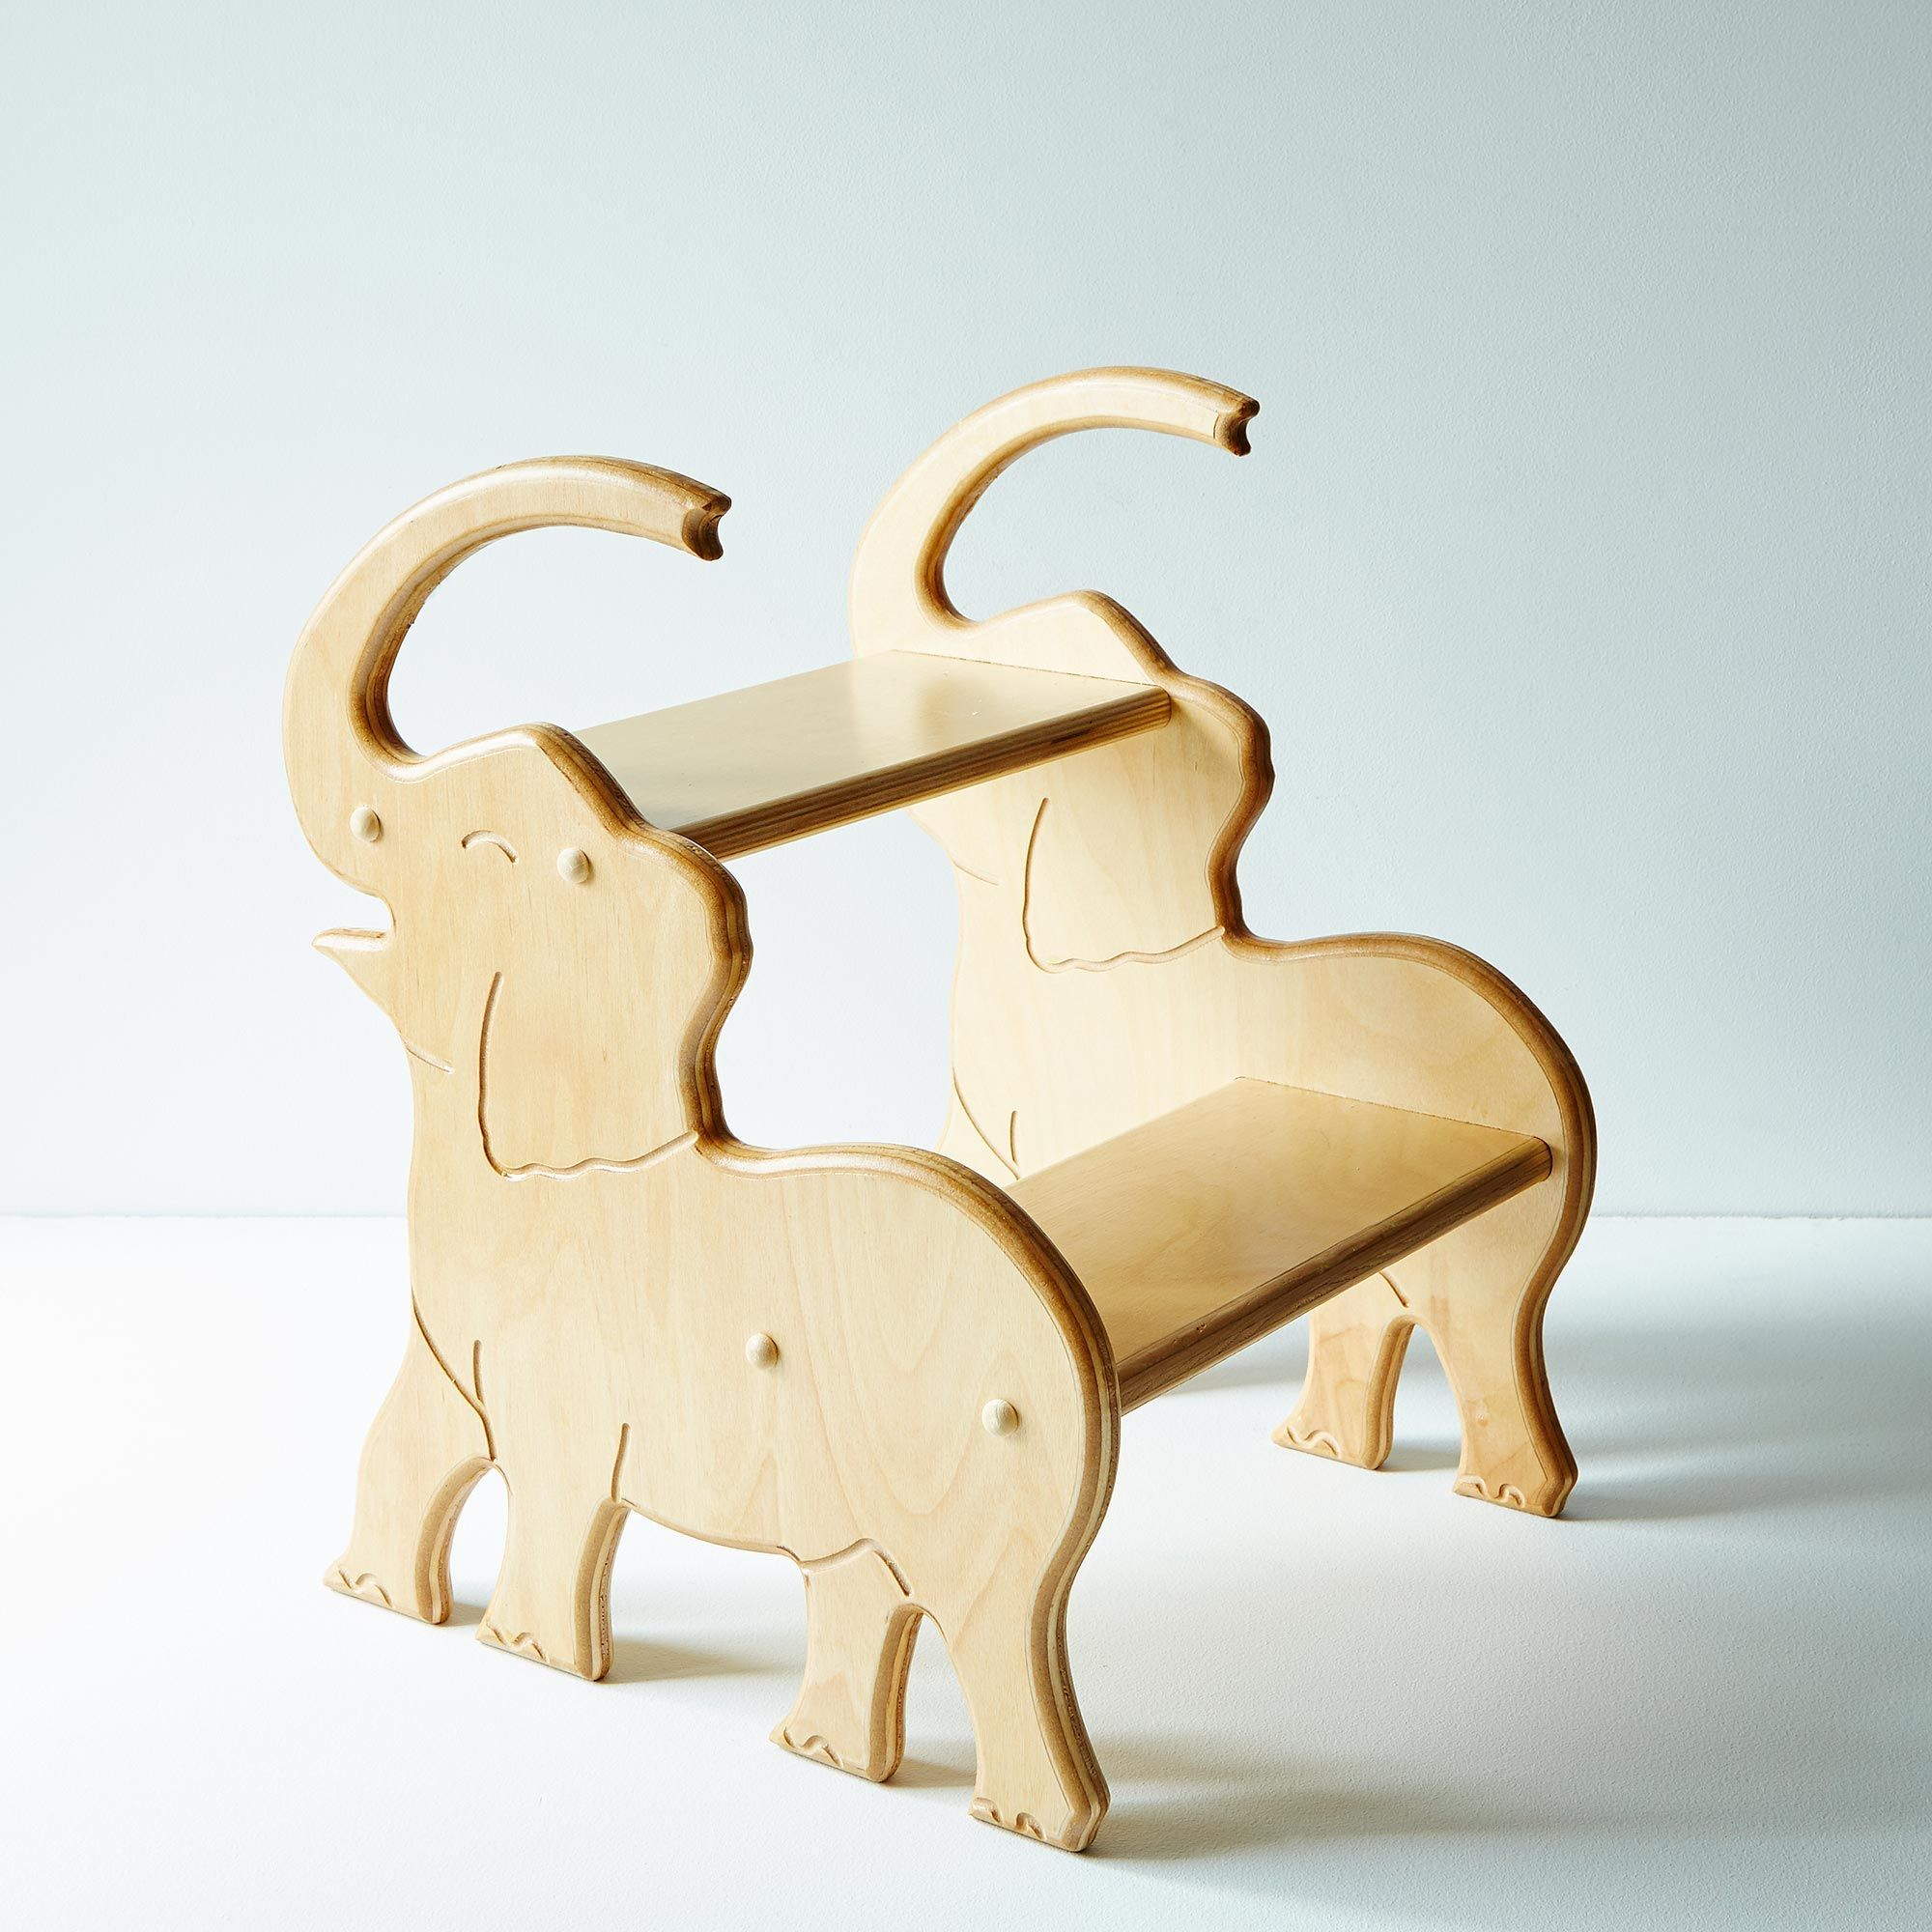 9328b3a3 f685 4cec b8e3 e5cabcd63d4f  2014 1117 pop pops furniture co elephant stool 009